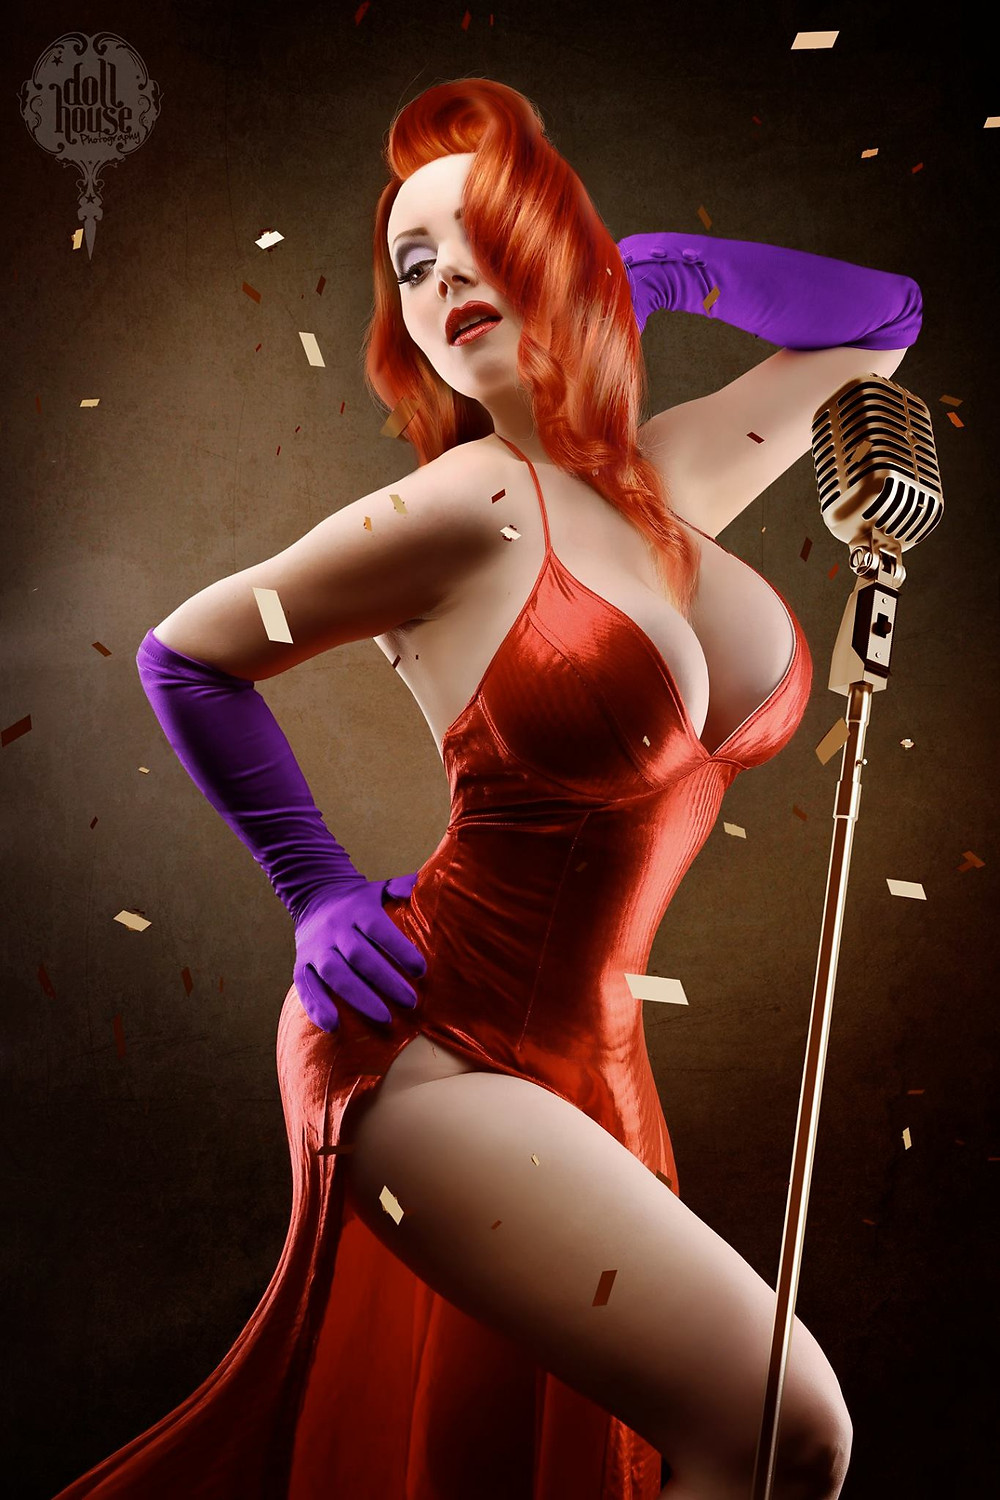 October Divine Pinup Model by DollHouse Photography